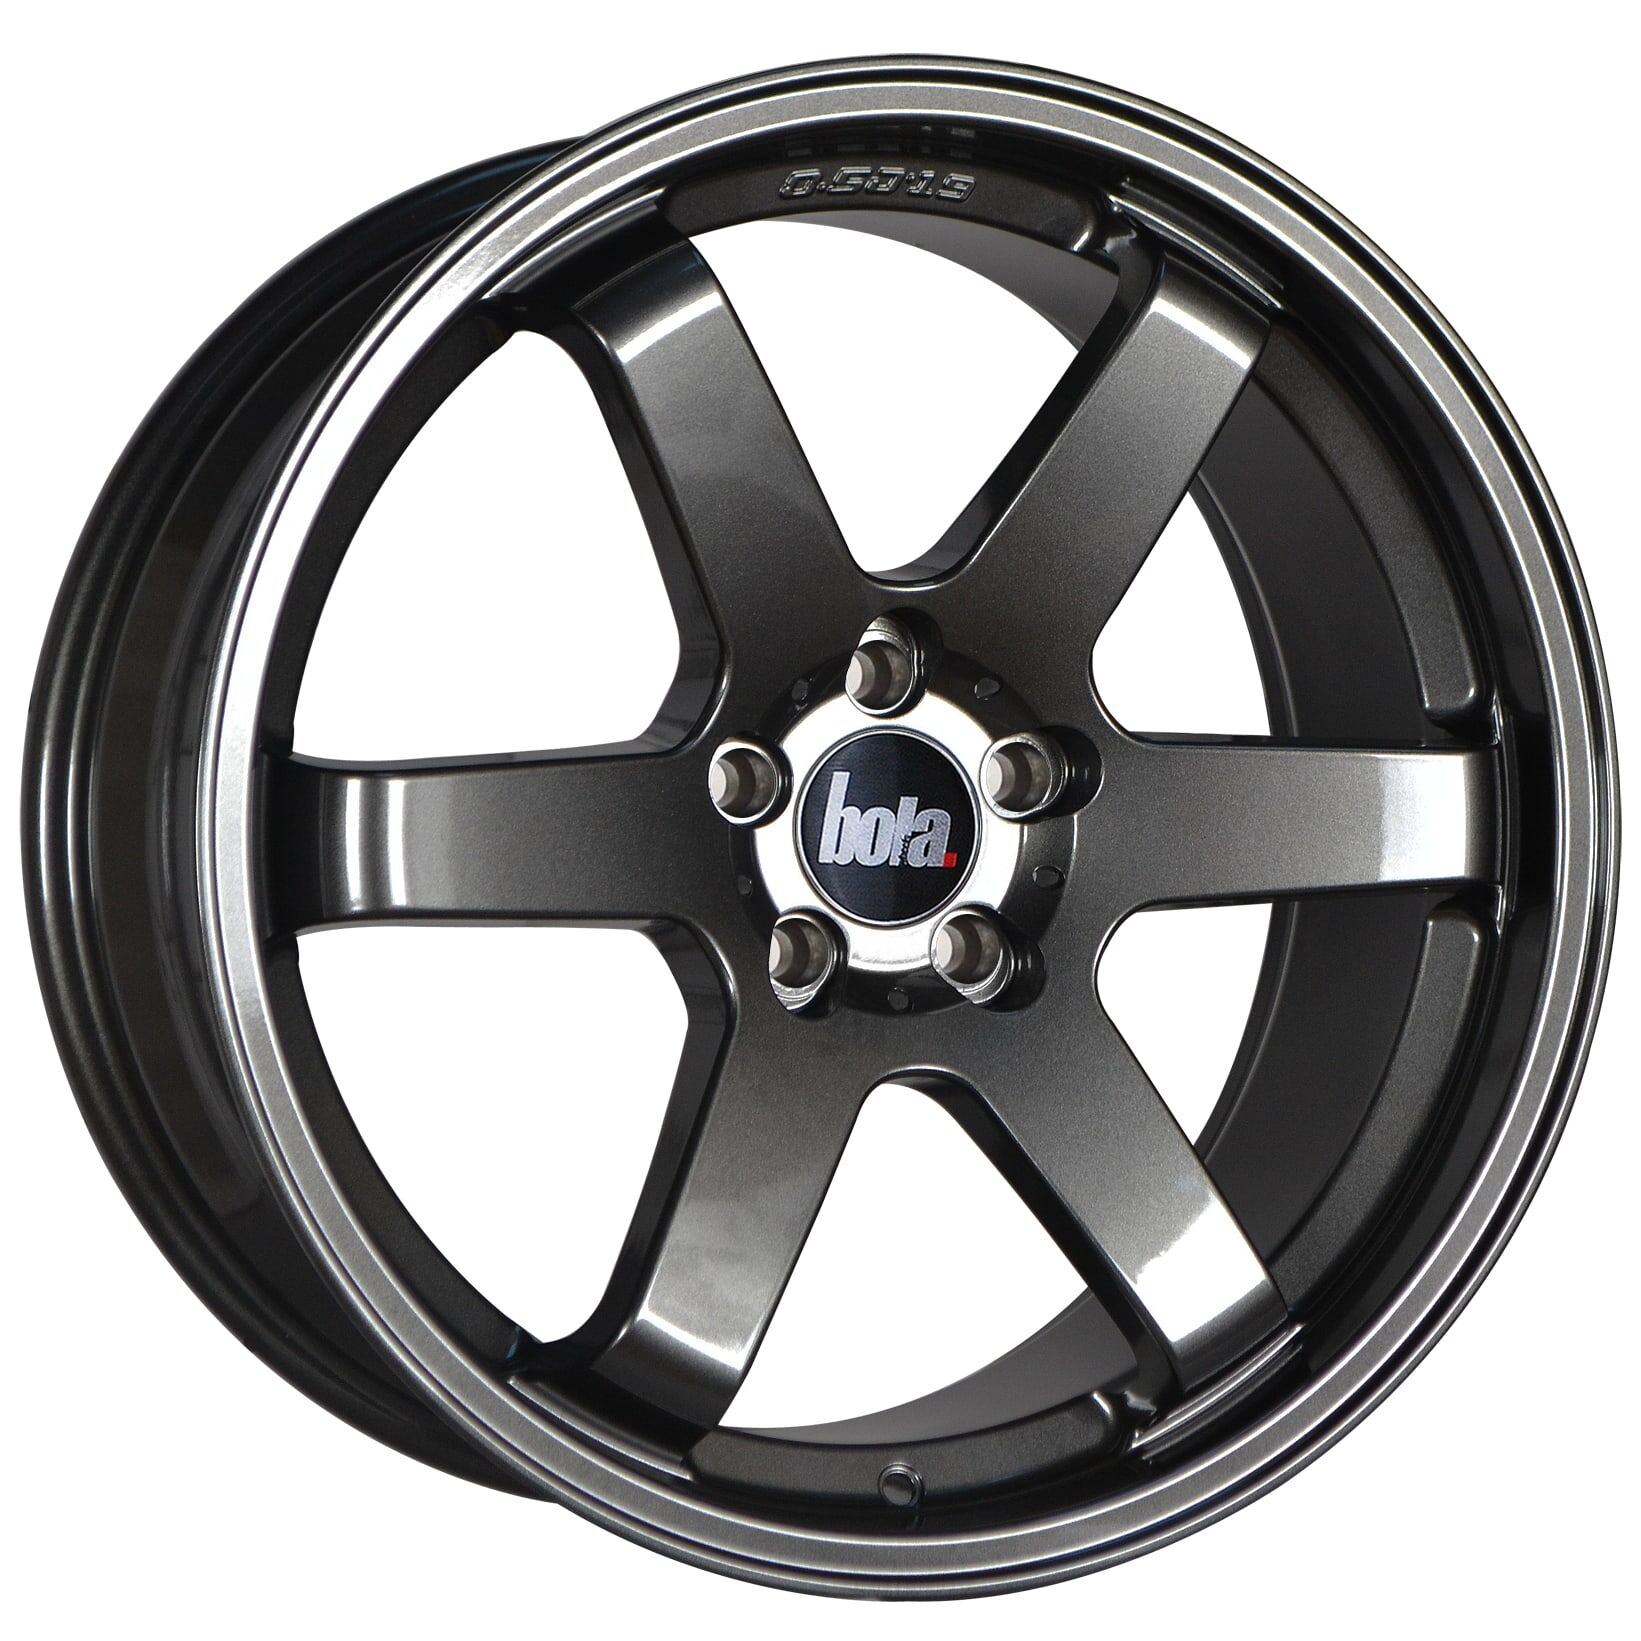 "18"" BOLA B1 Wheels - Gloss Gunmetal - VW / Audi / Mercedes - 5x112"